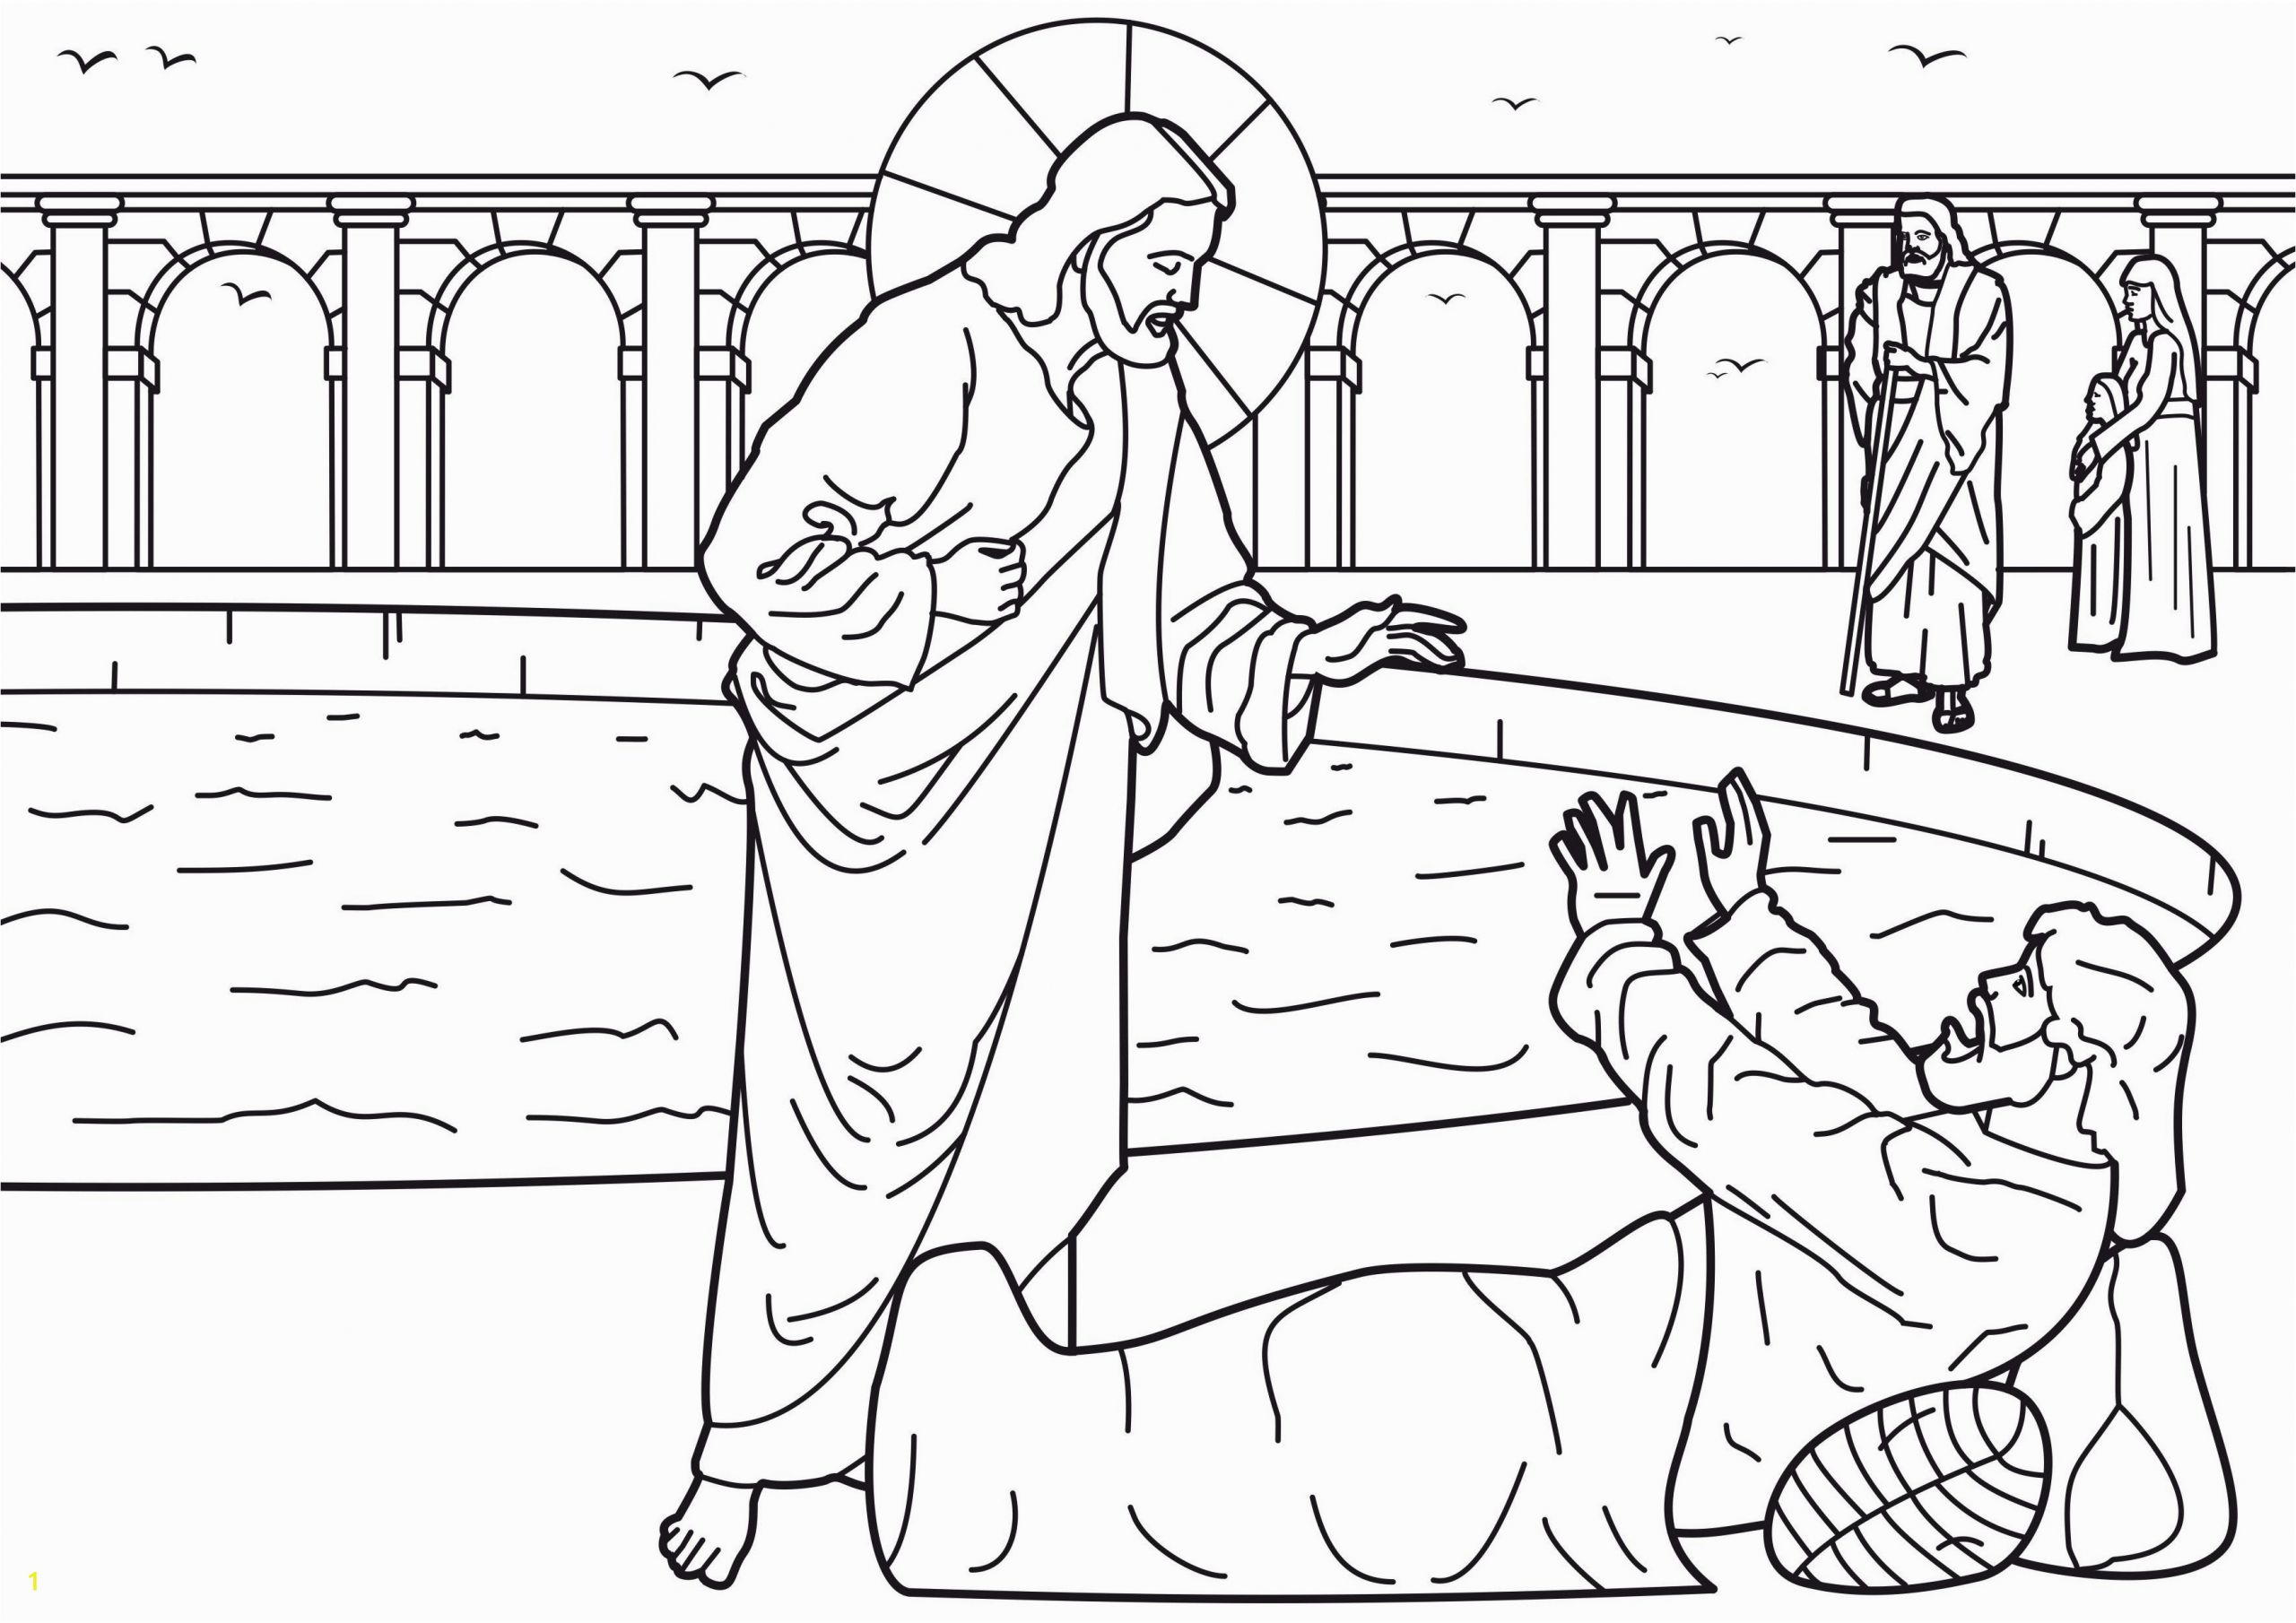 jesus healing the blind man coloring page elegant images bible page 3 notes from the parsonage of jesus healing the blind man coloring page